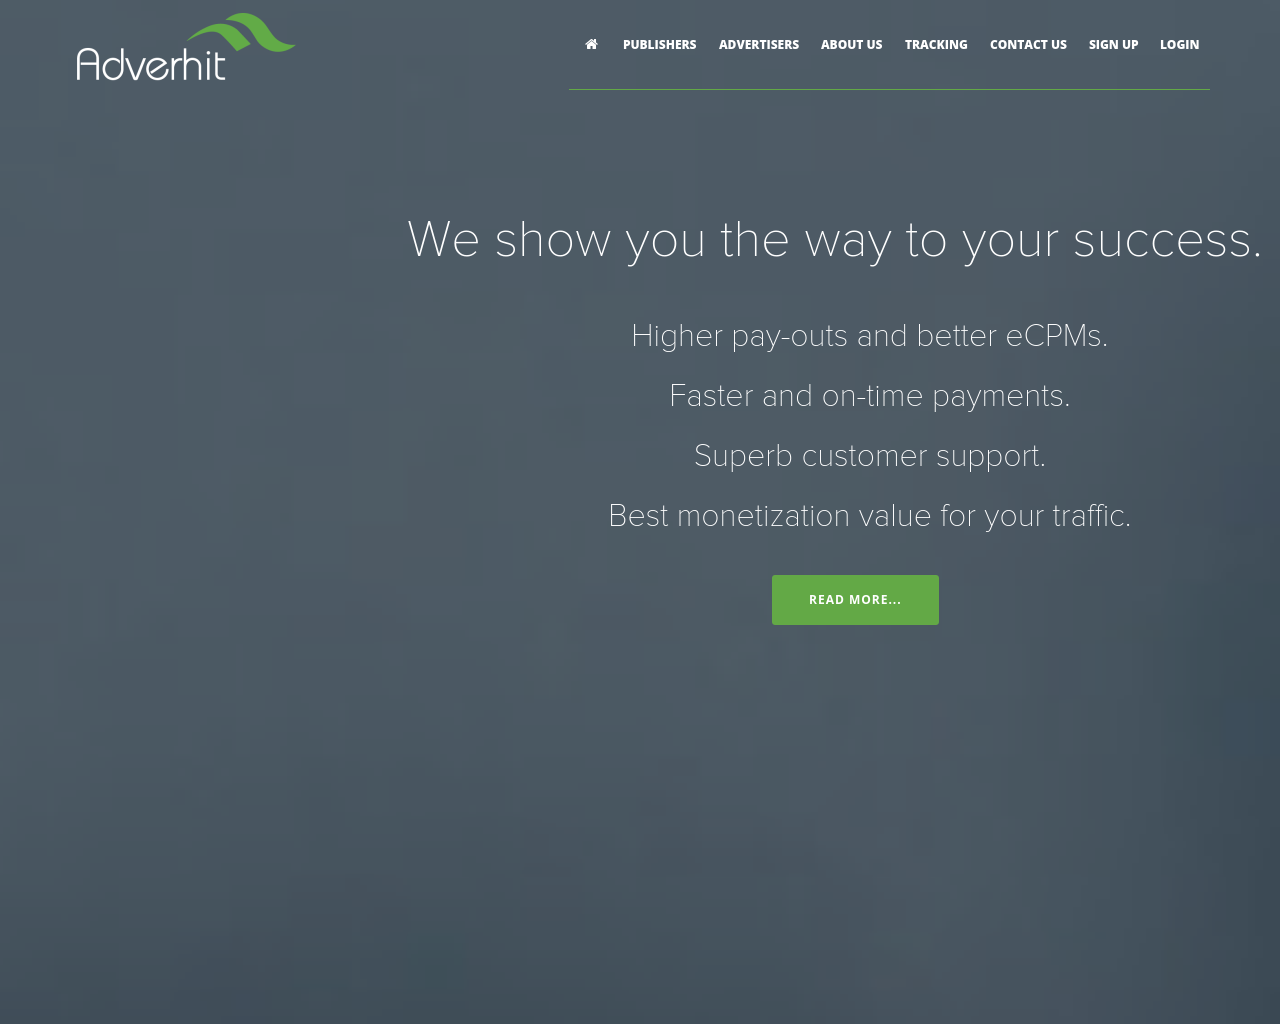 Adverhit-Advertising-Reviews-Pricing